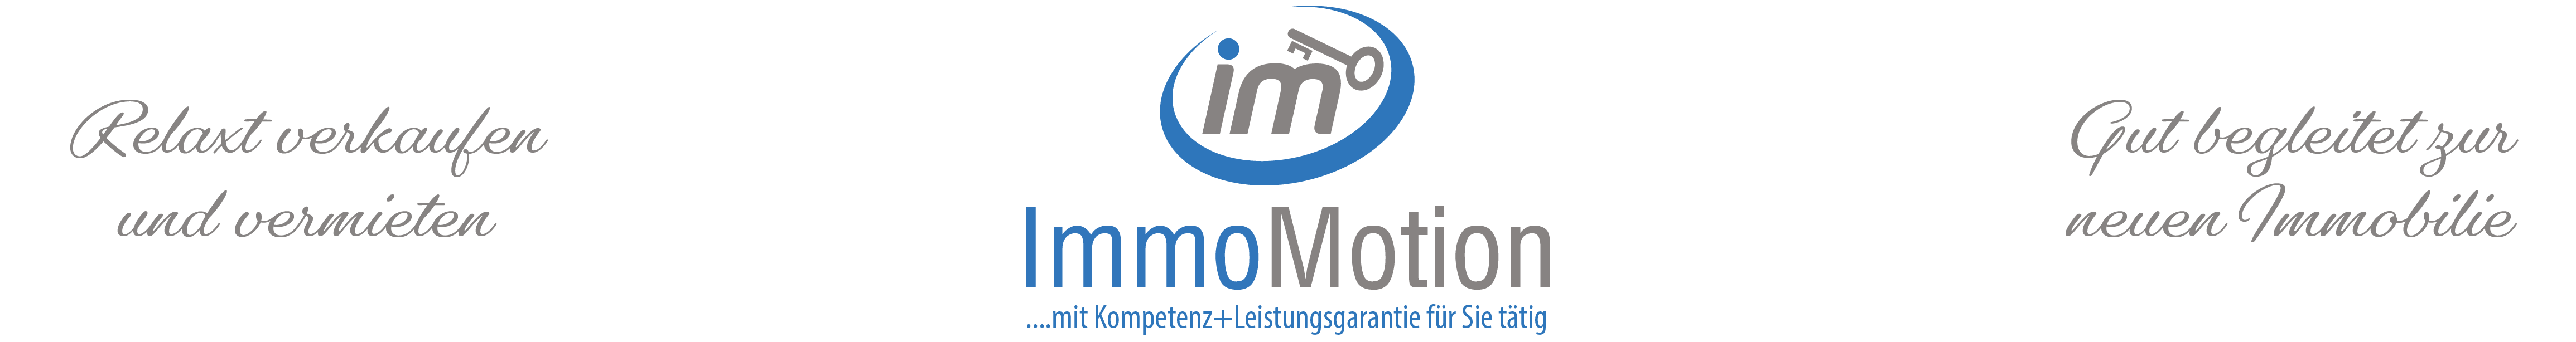 ImmoMotion –  Profi Vermittlung+3D Marketing Logo